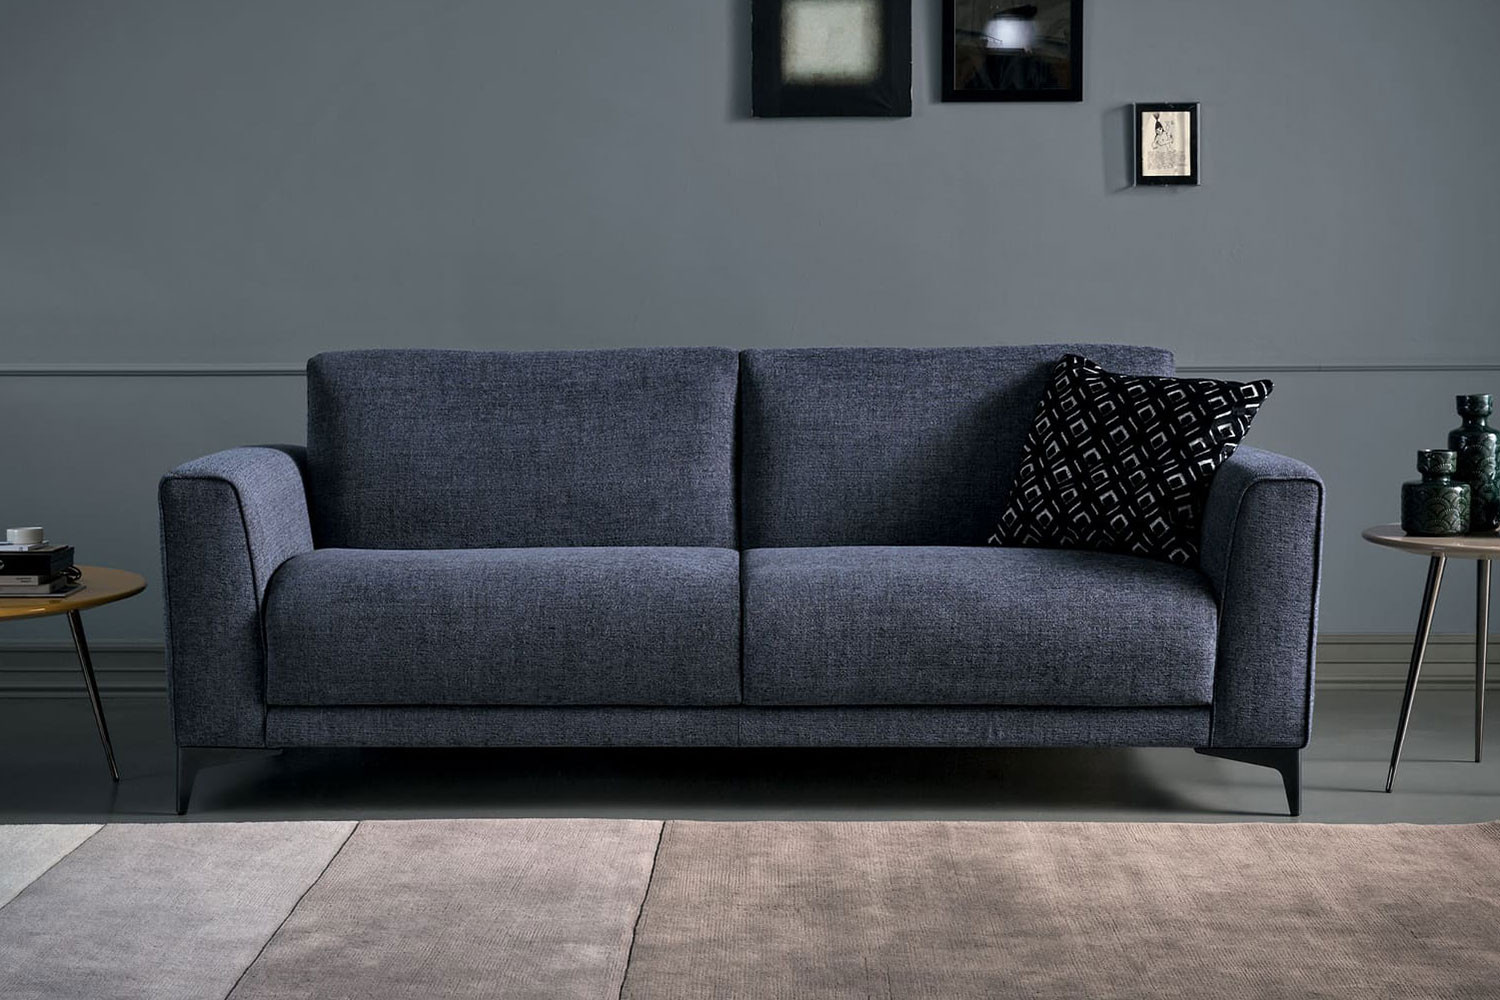 Stylish 2-3 seater sofa bed with high tapered metal legs, slightly flared arms and generous seat cushions